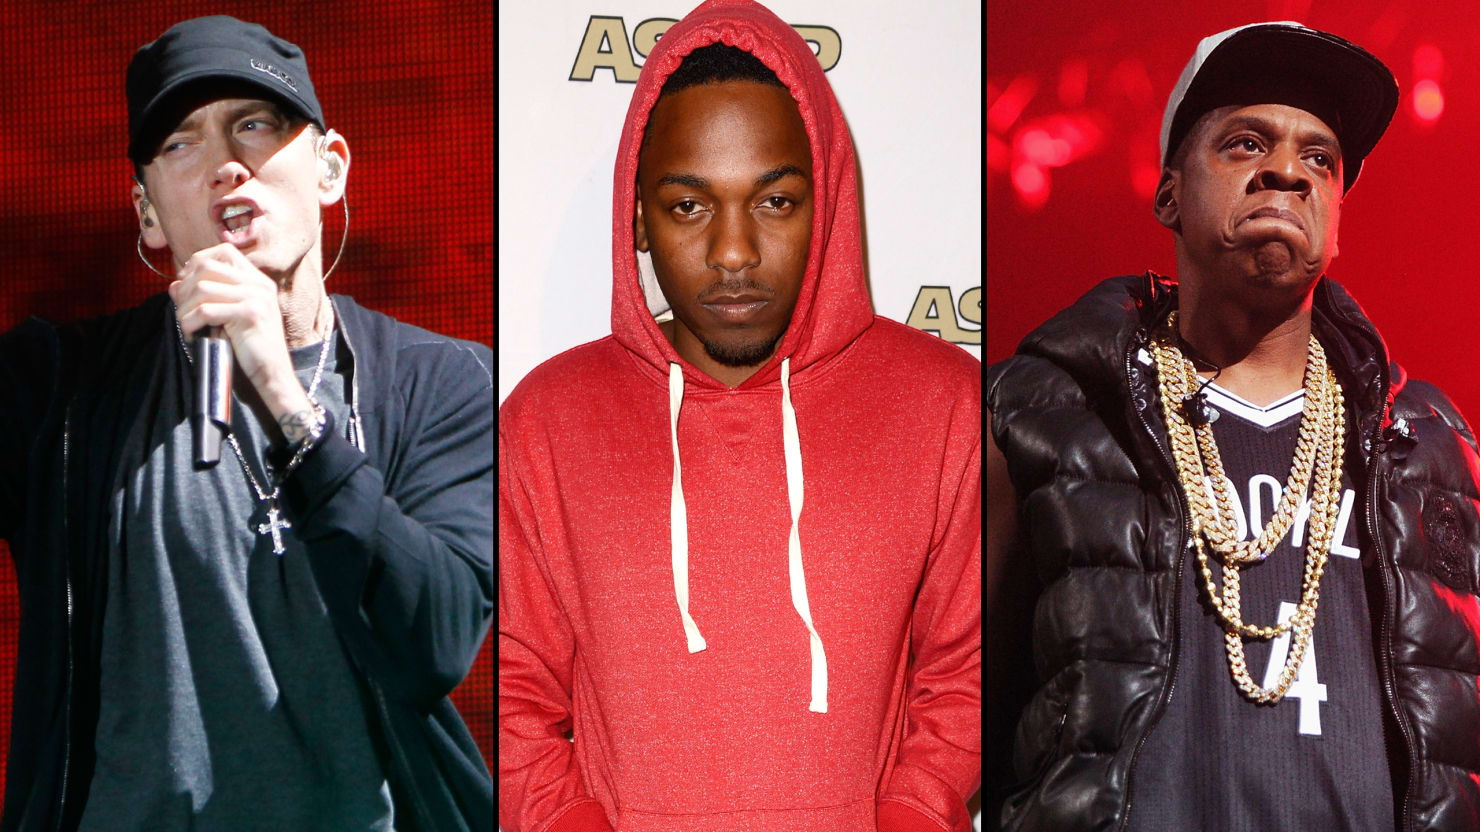 The 9 greatest rap disses kendrick lamar jay z 2pac more the world is going crazy over a new diss verse by kendrick lamar but what are the best rap disses ever malvernweather Image collections